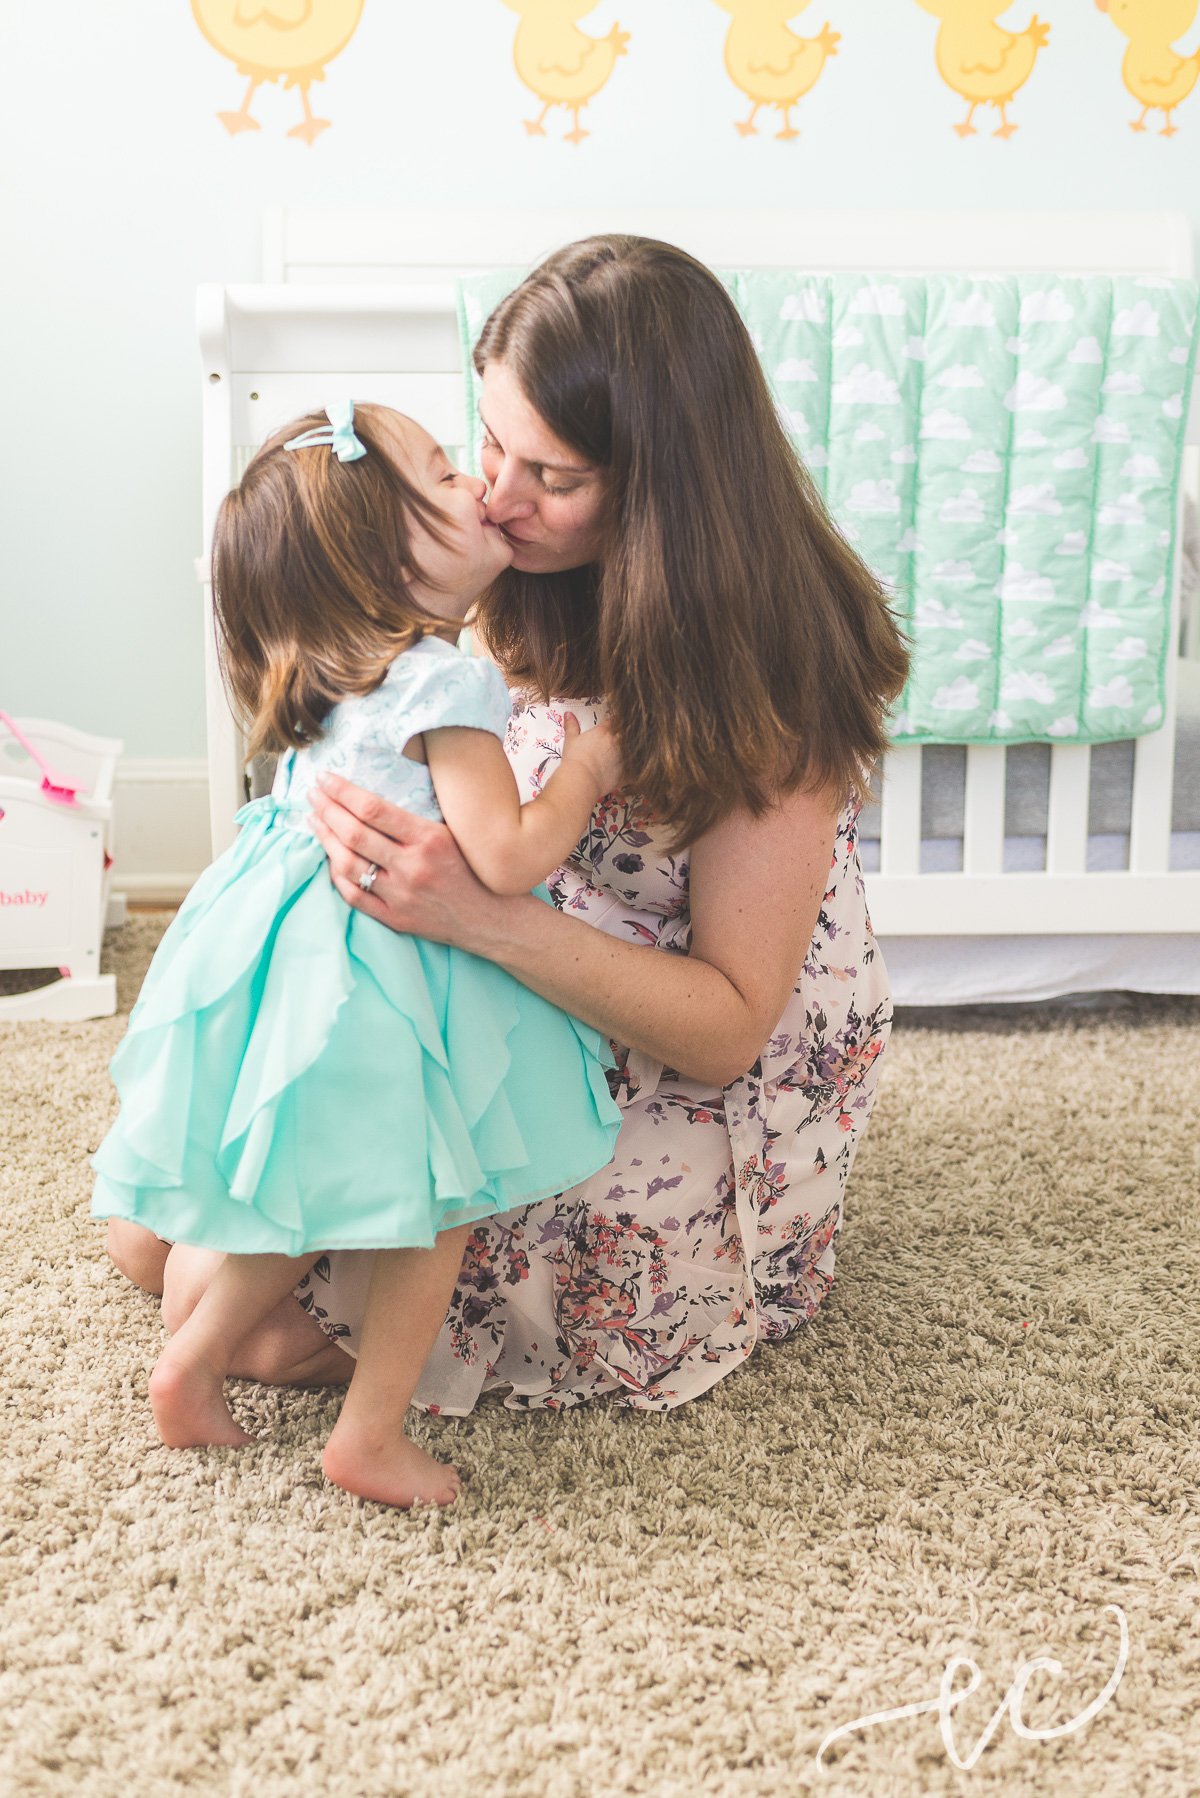 norristown-maternity-photography-04.jpg